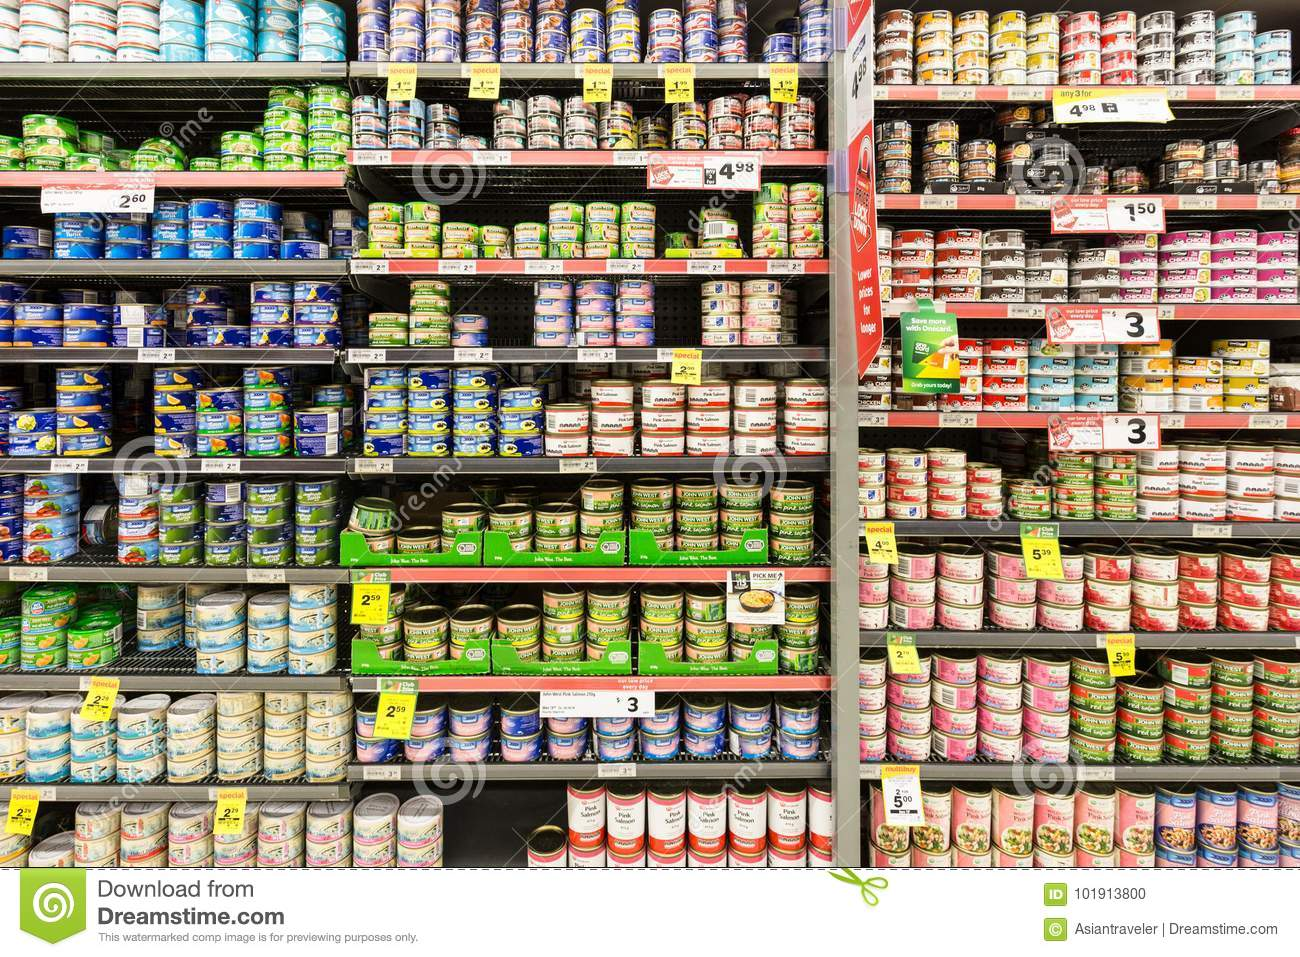 Auckland New Zealand February 22 2017 Cans Of Tuna Salmon And Other Kinds Of Fish Displayed In A Supermarket With Prices In New Zealand Dollar